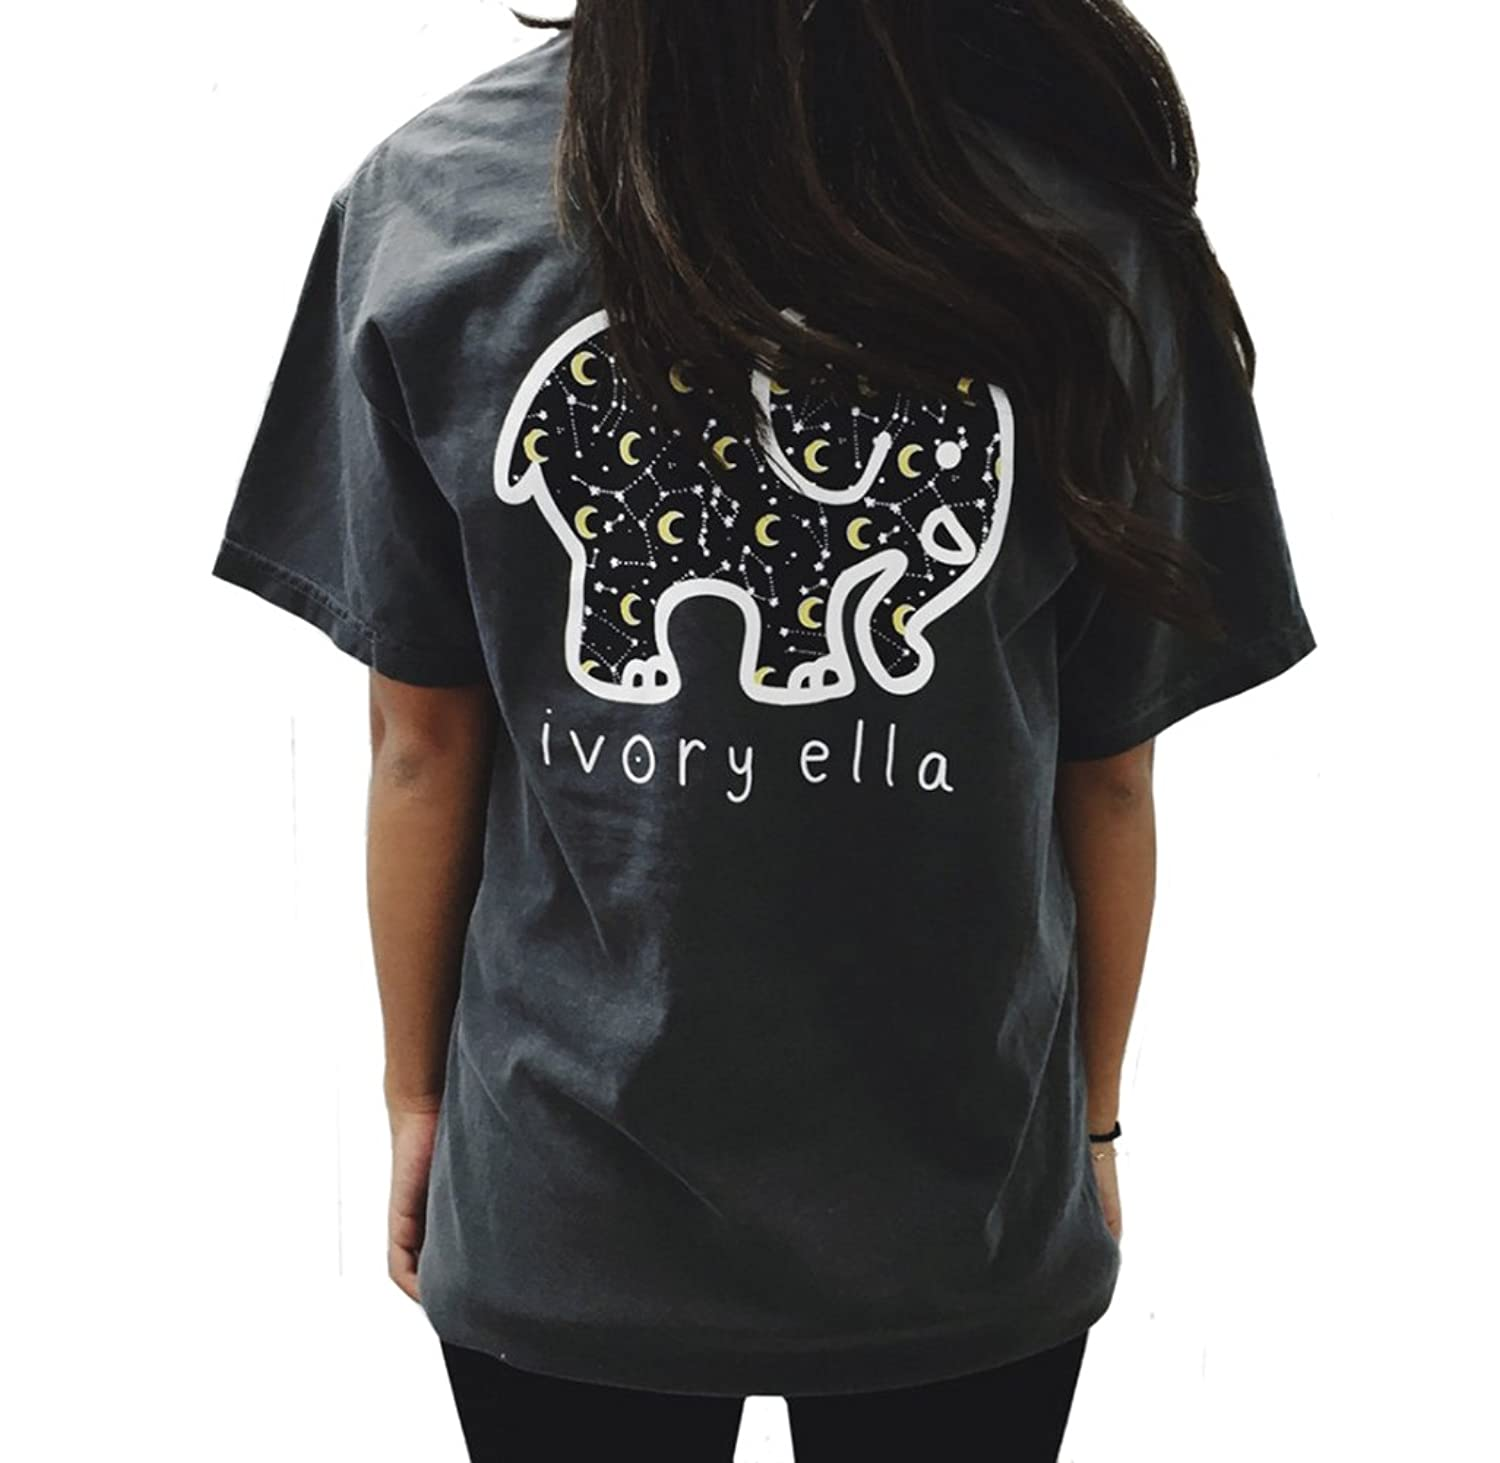 MIXMAX Women Short Sleeve Crew Neck Elephant Print Pocket Top T-shirt